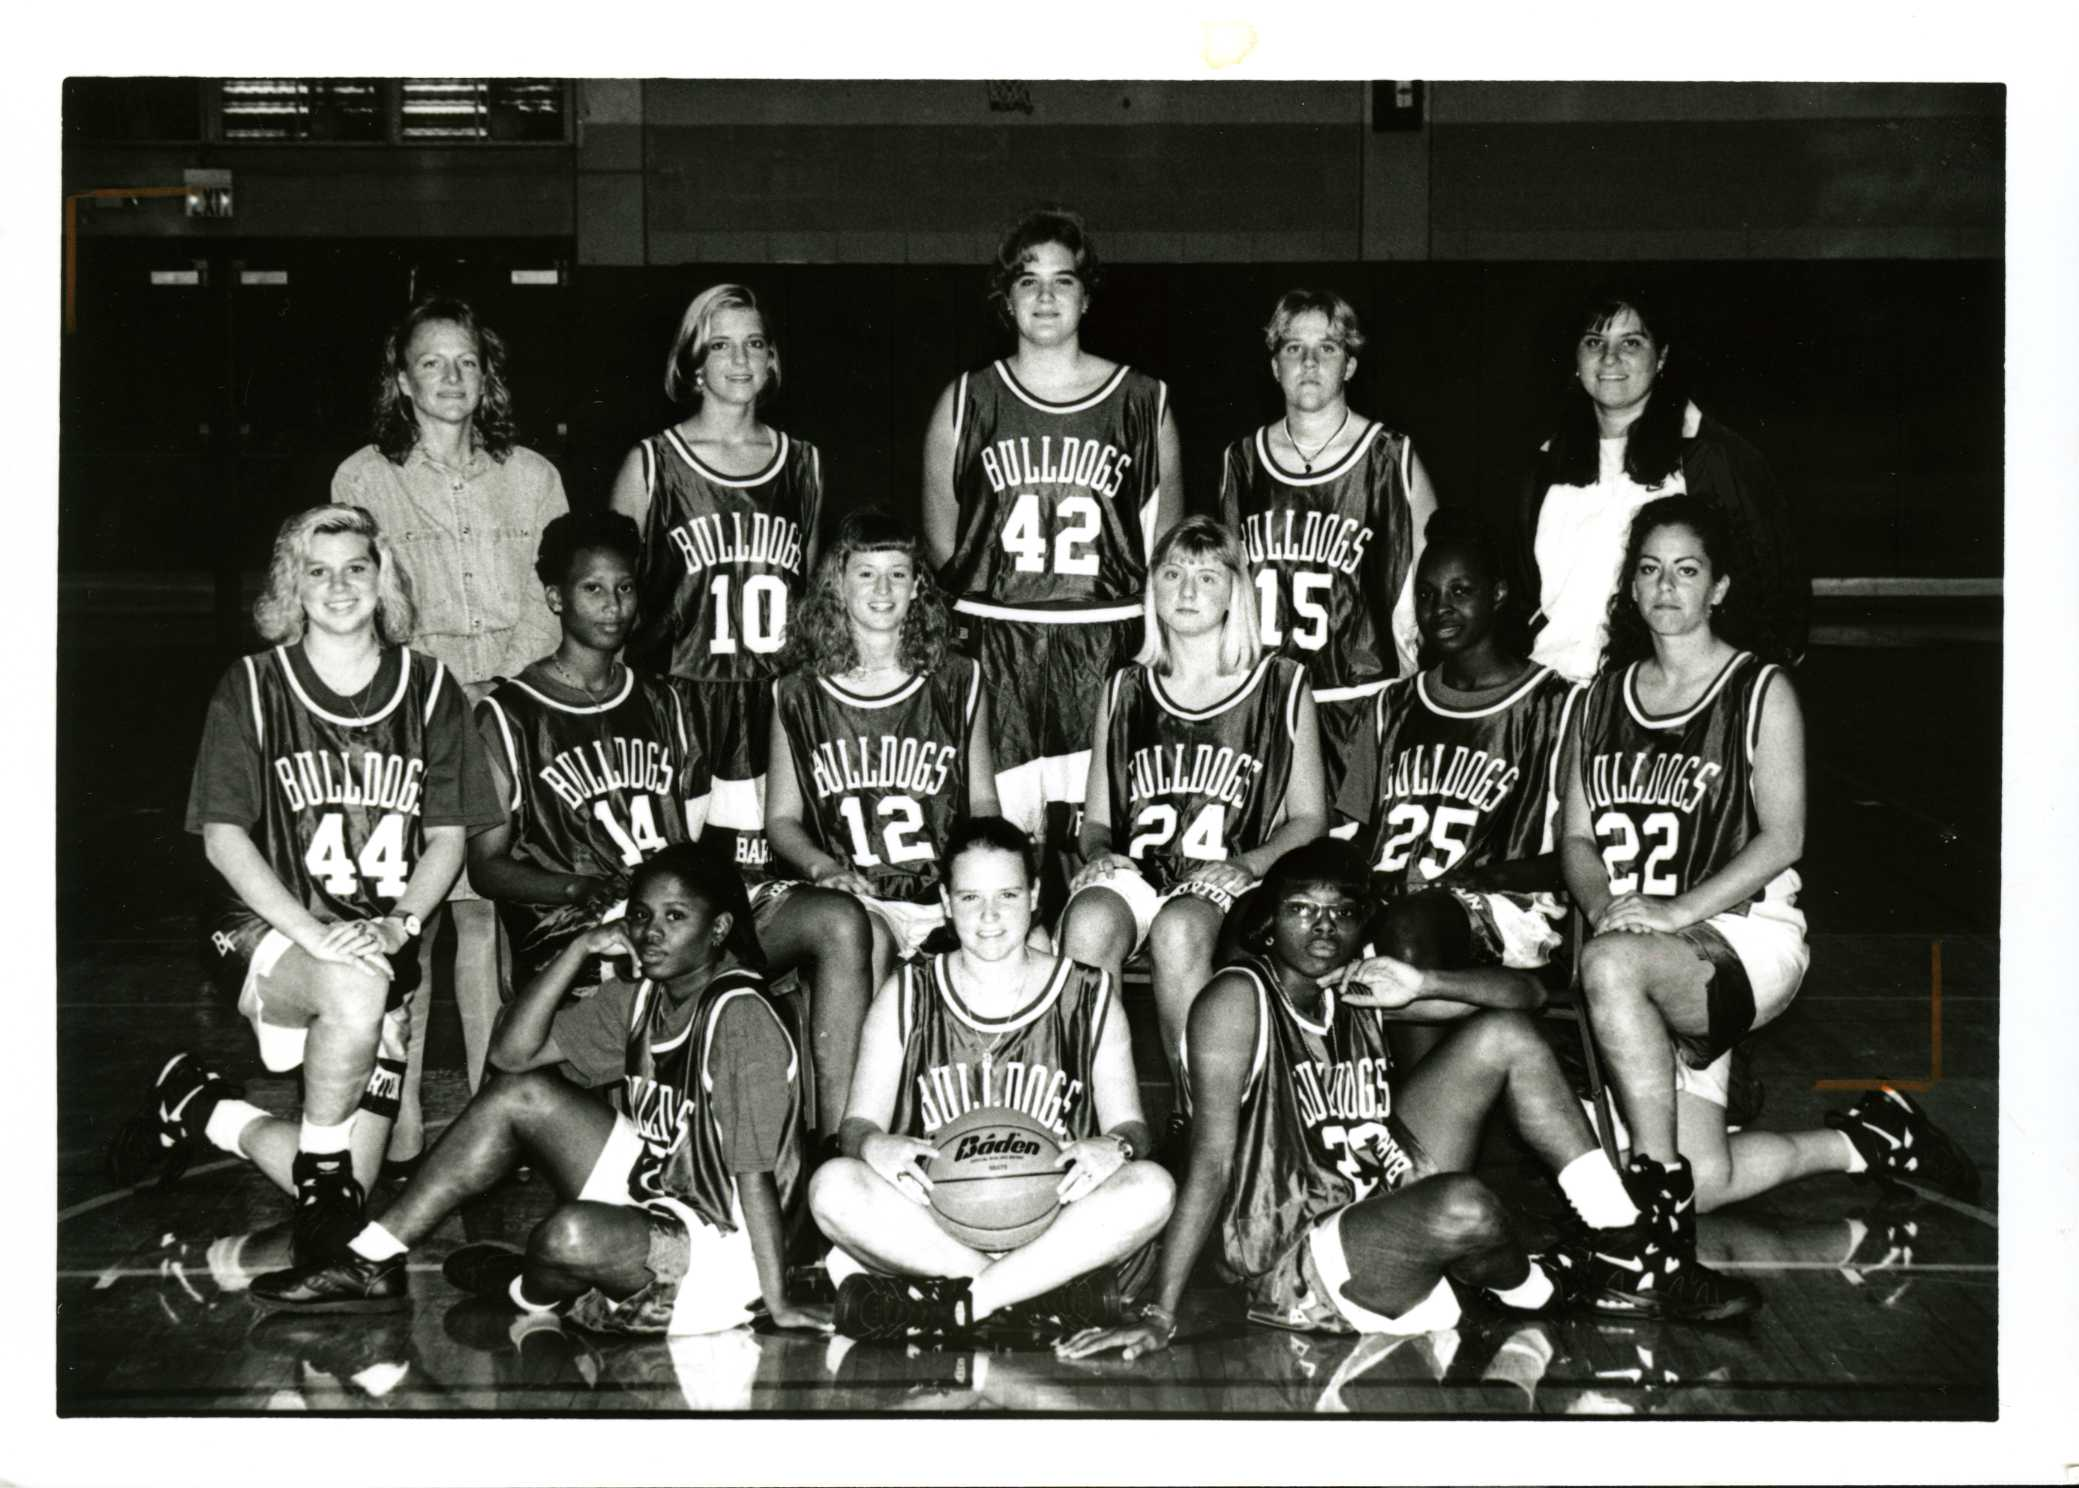 Women's Basketball team, undated photograph